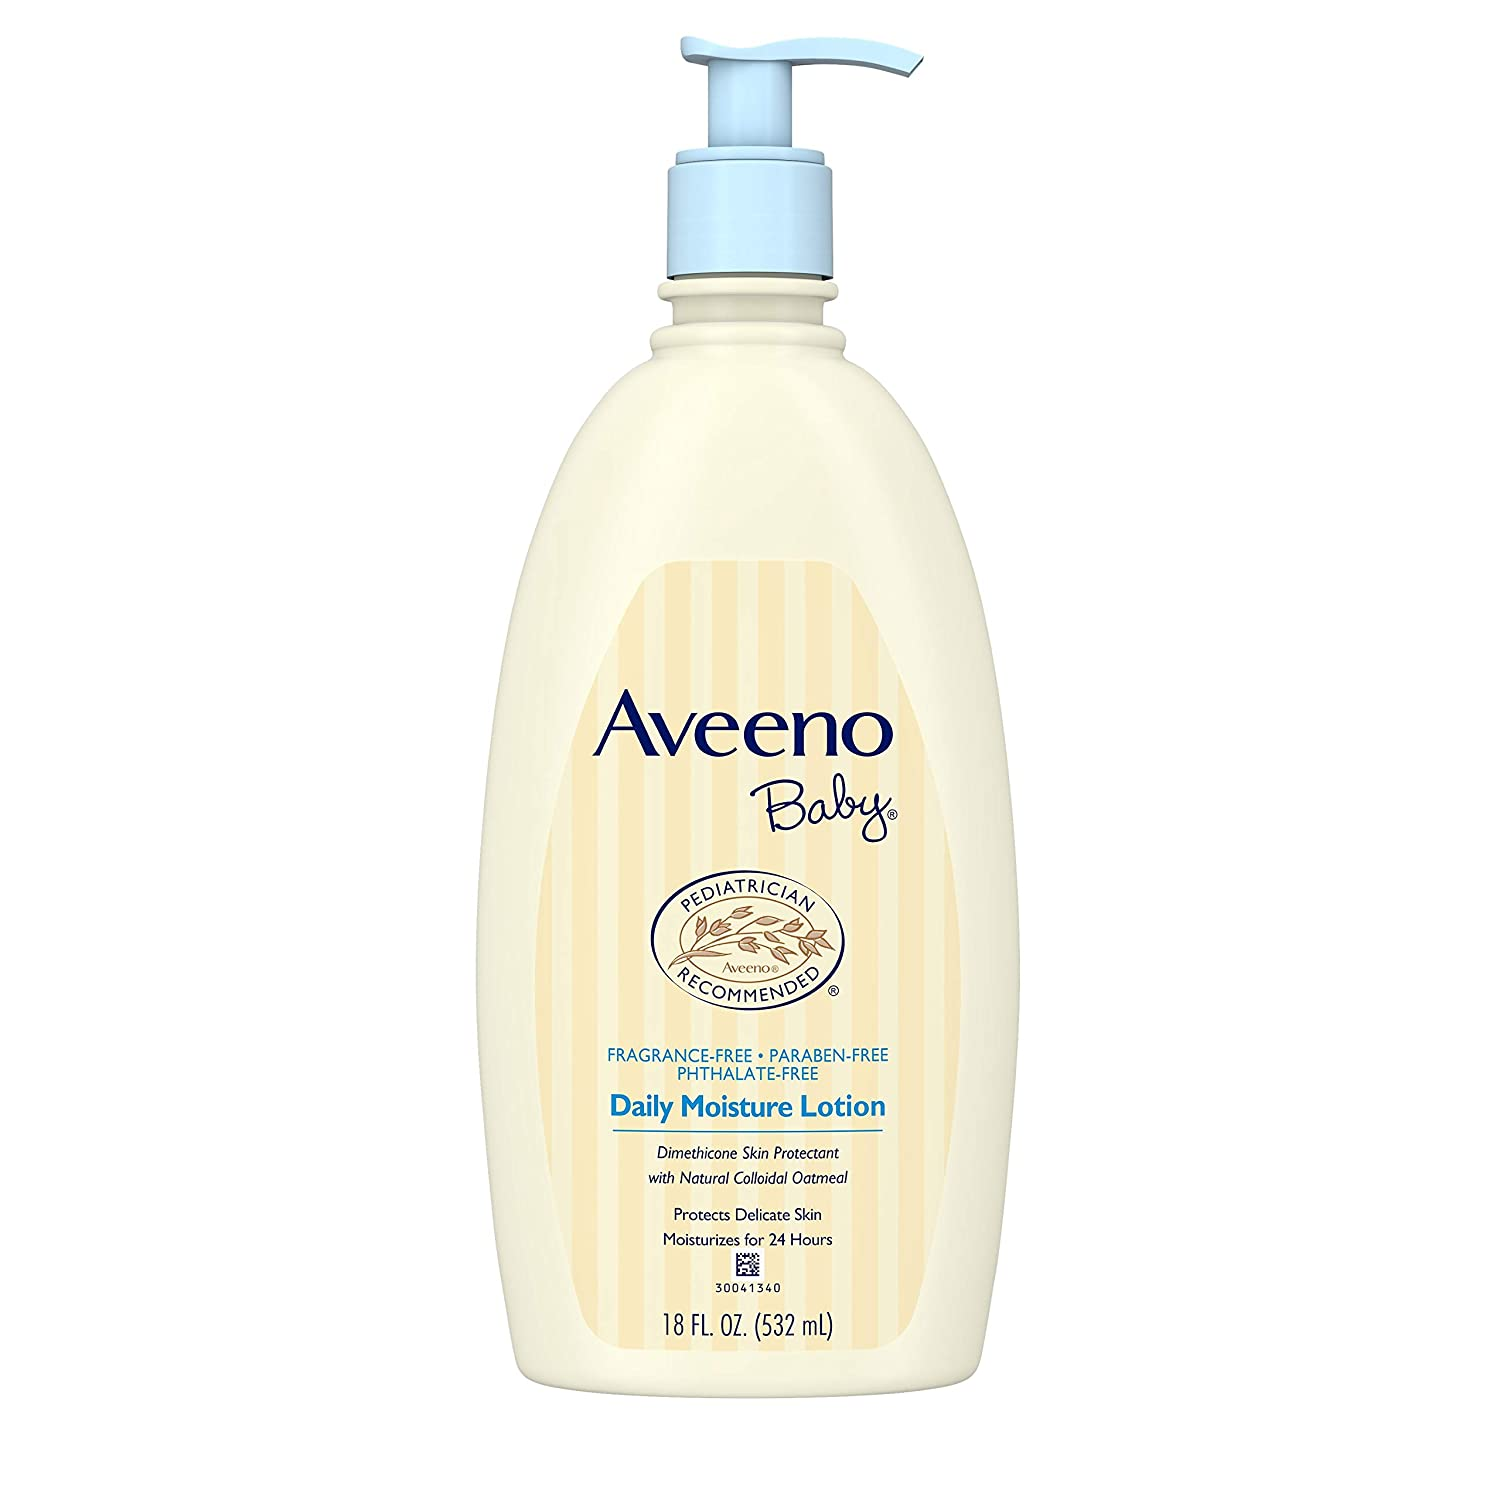 Aveeno Baby Daily Moisture Lotion for